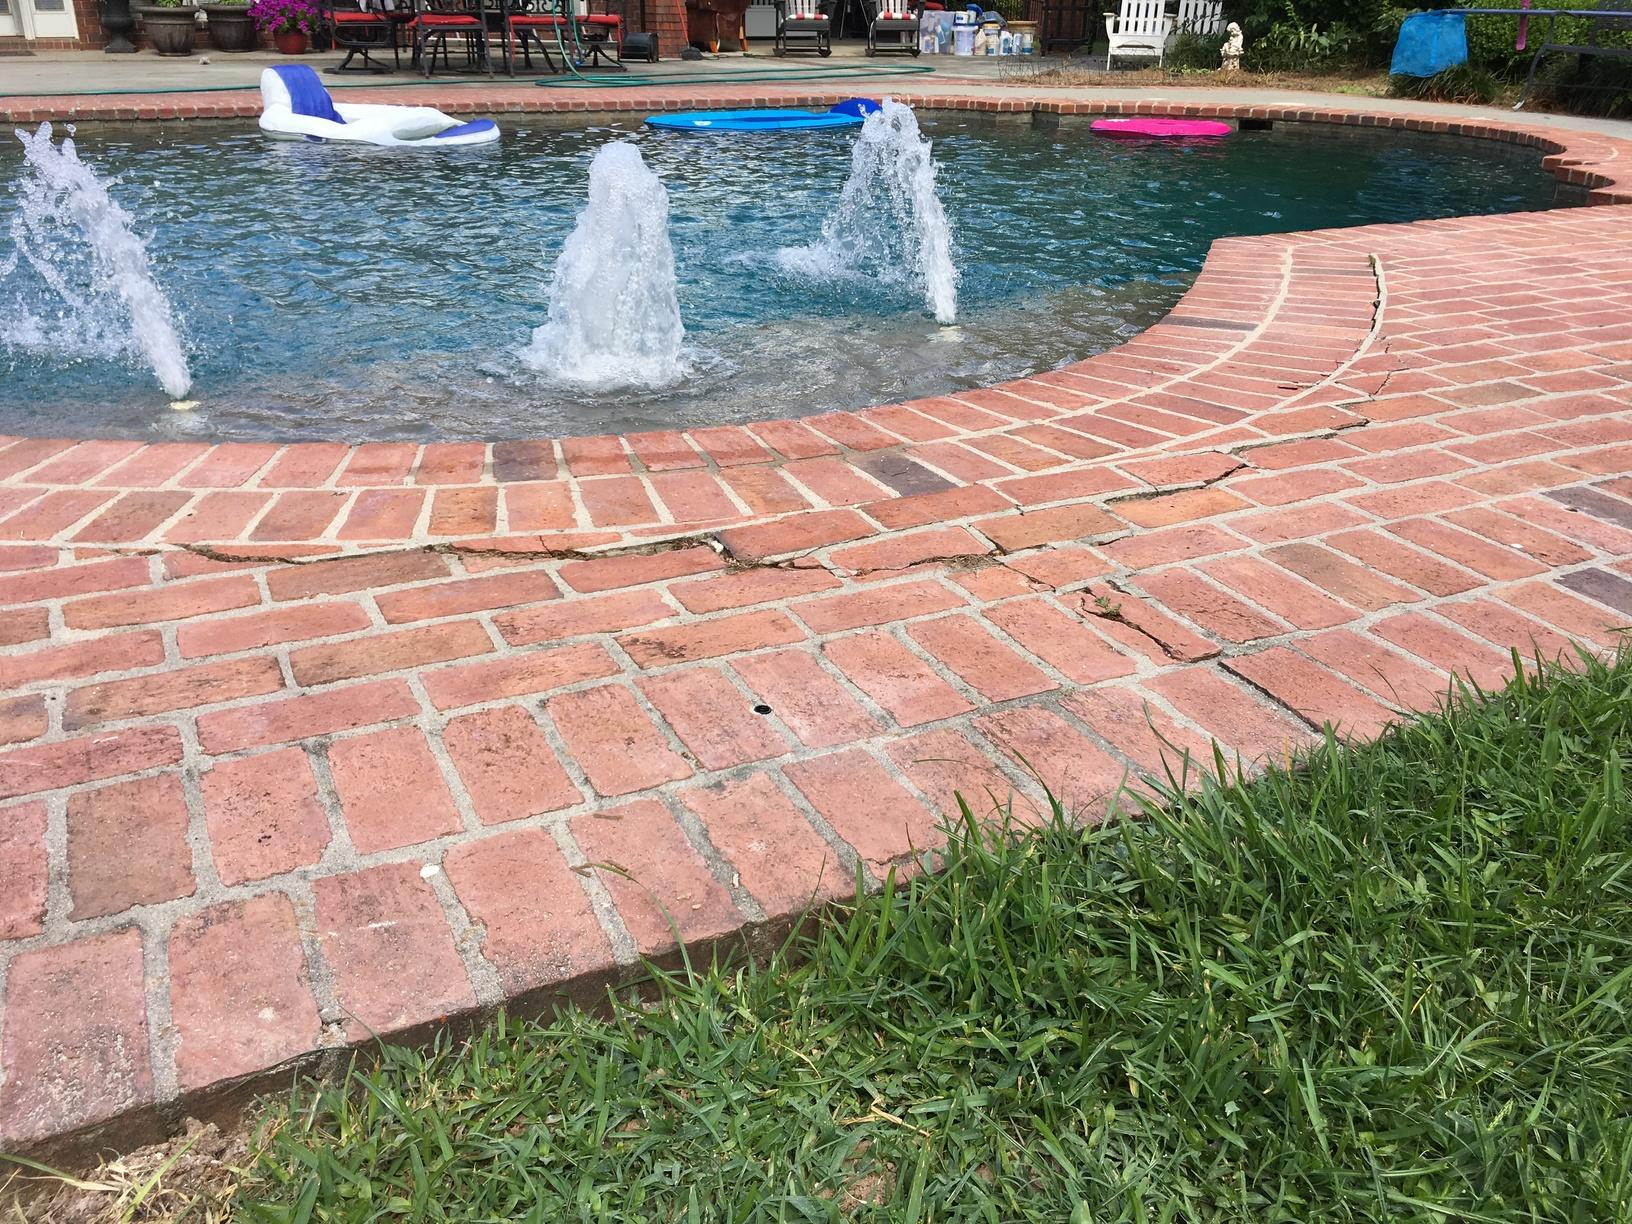 Cracked Brick Pool Deck in Monroe, LA - After Photo